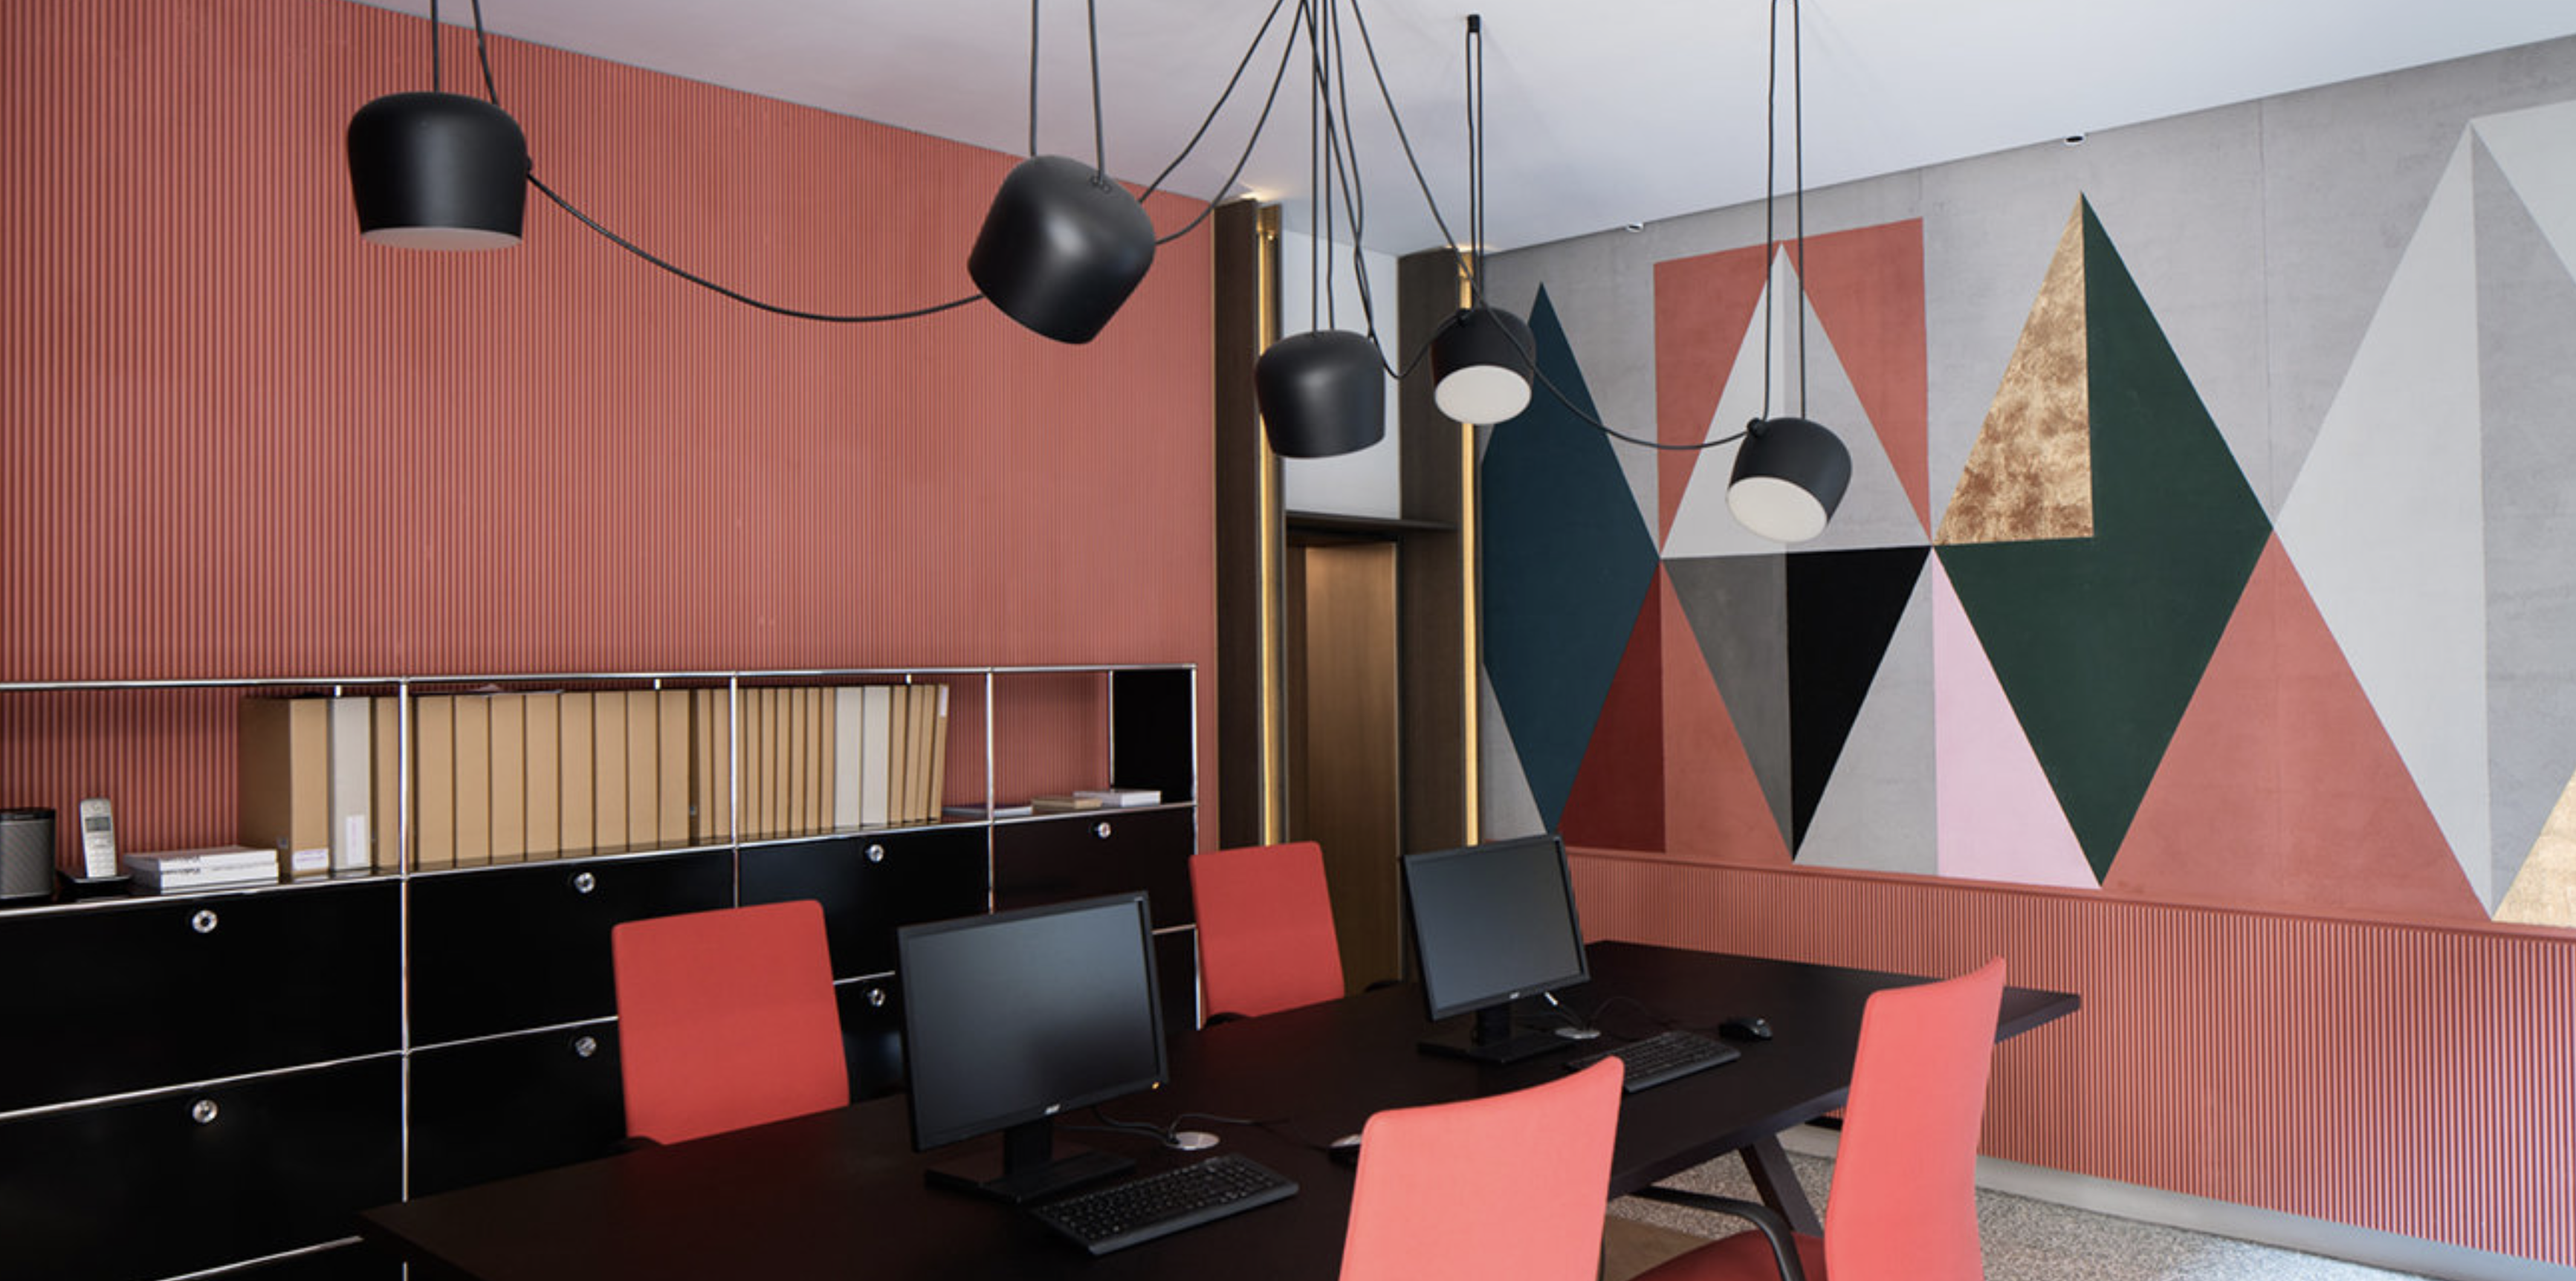 THE BOX Milano with Kinesit chairs from Arper Working